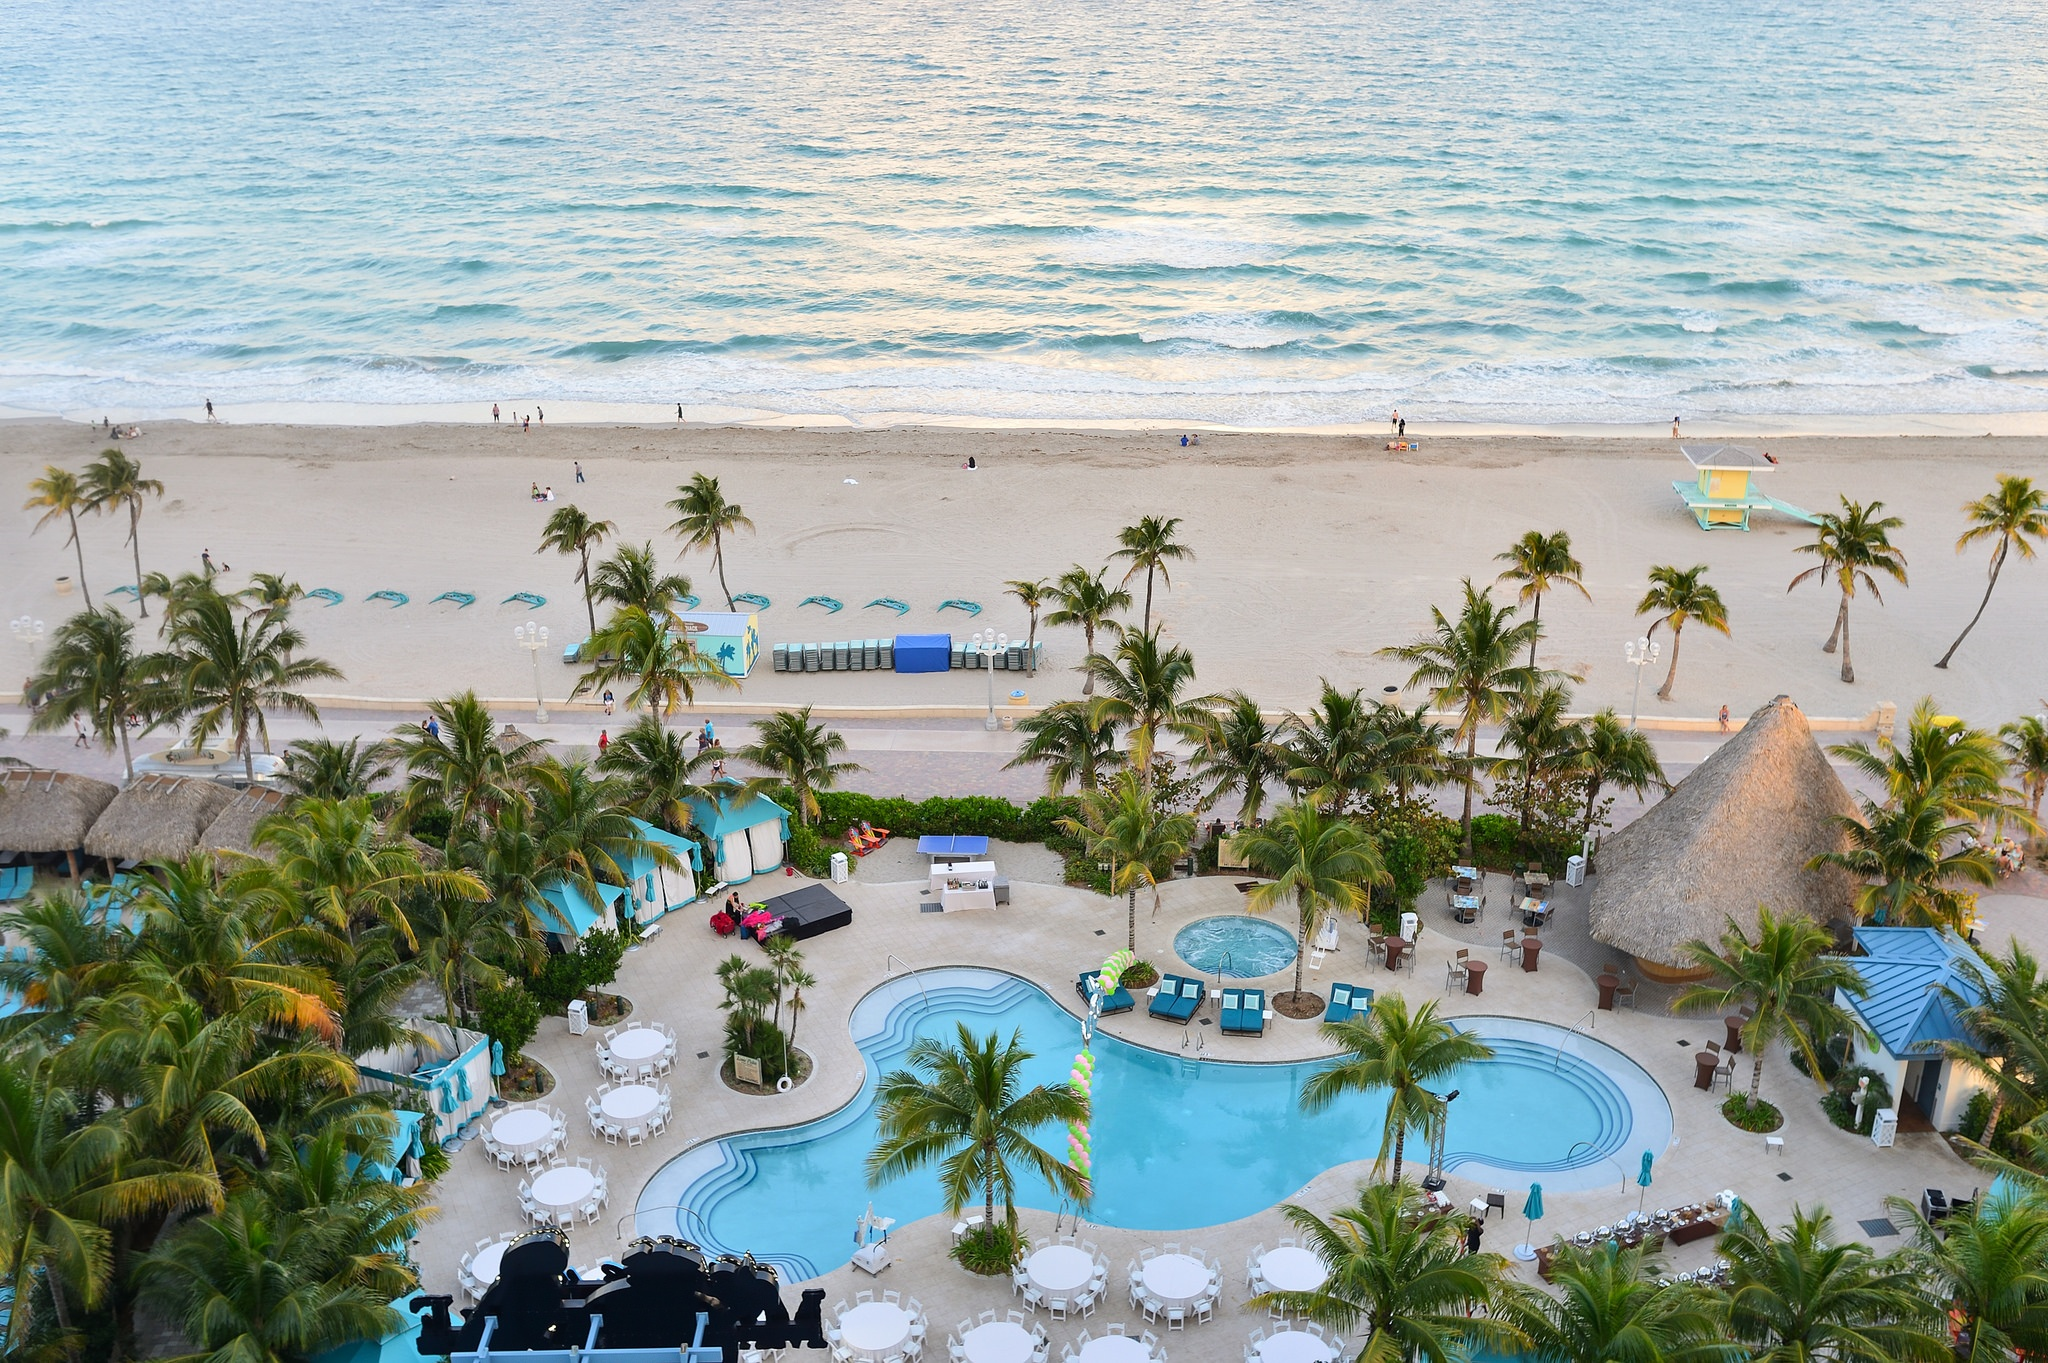 The Margaritaville Hollywood Beach Resort was the perfect laidback environment for RestaurantSpaces 2017.